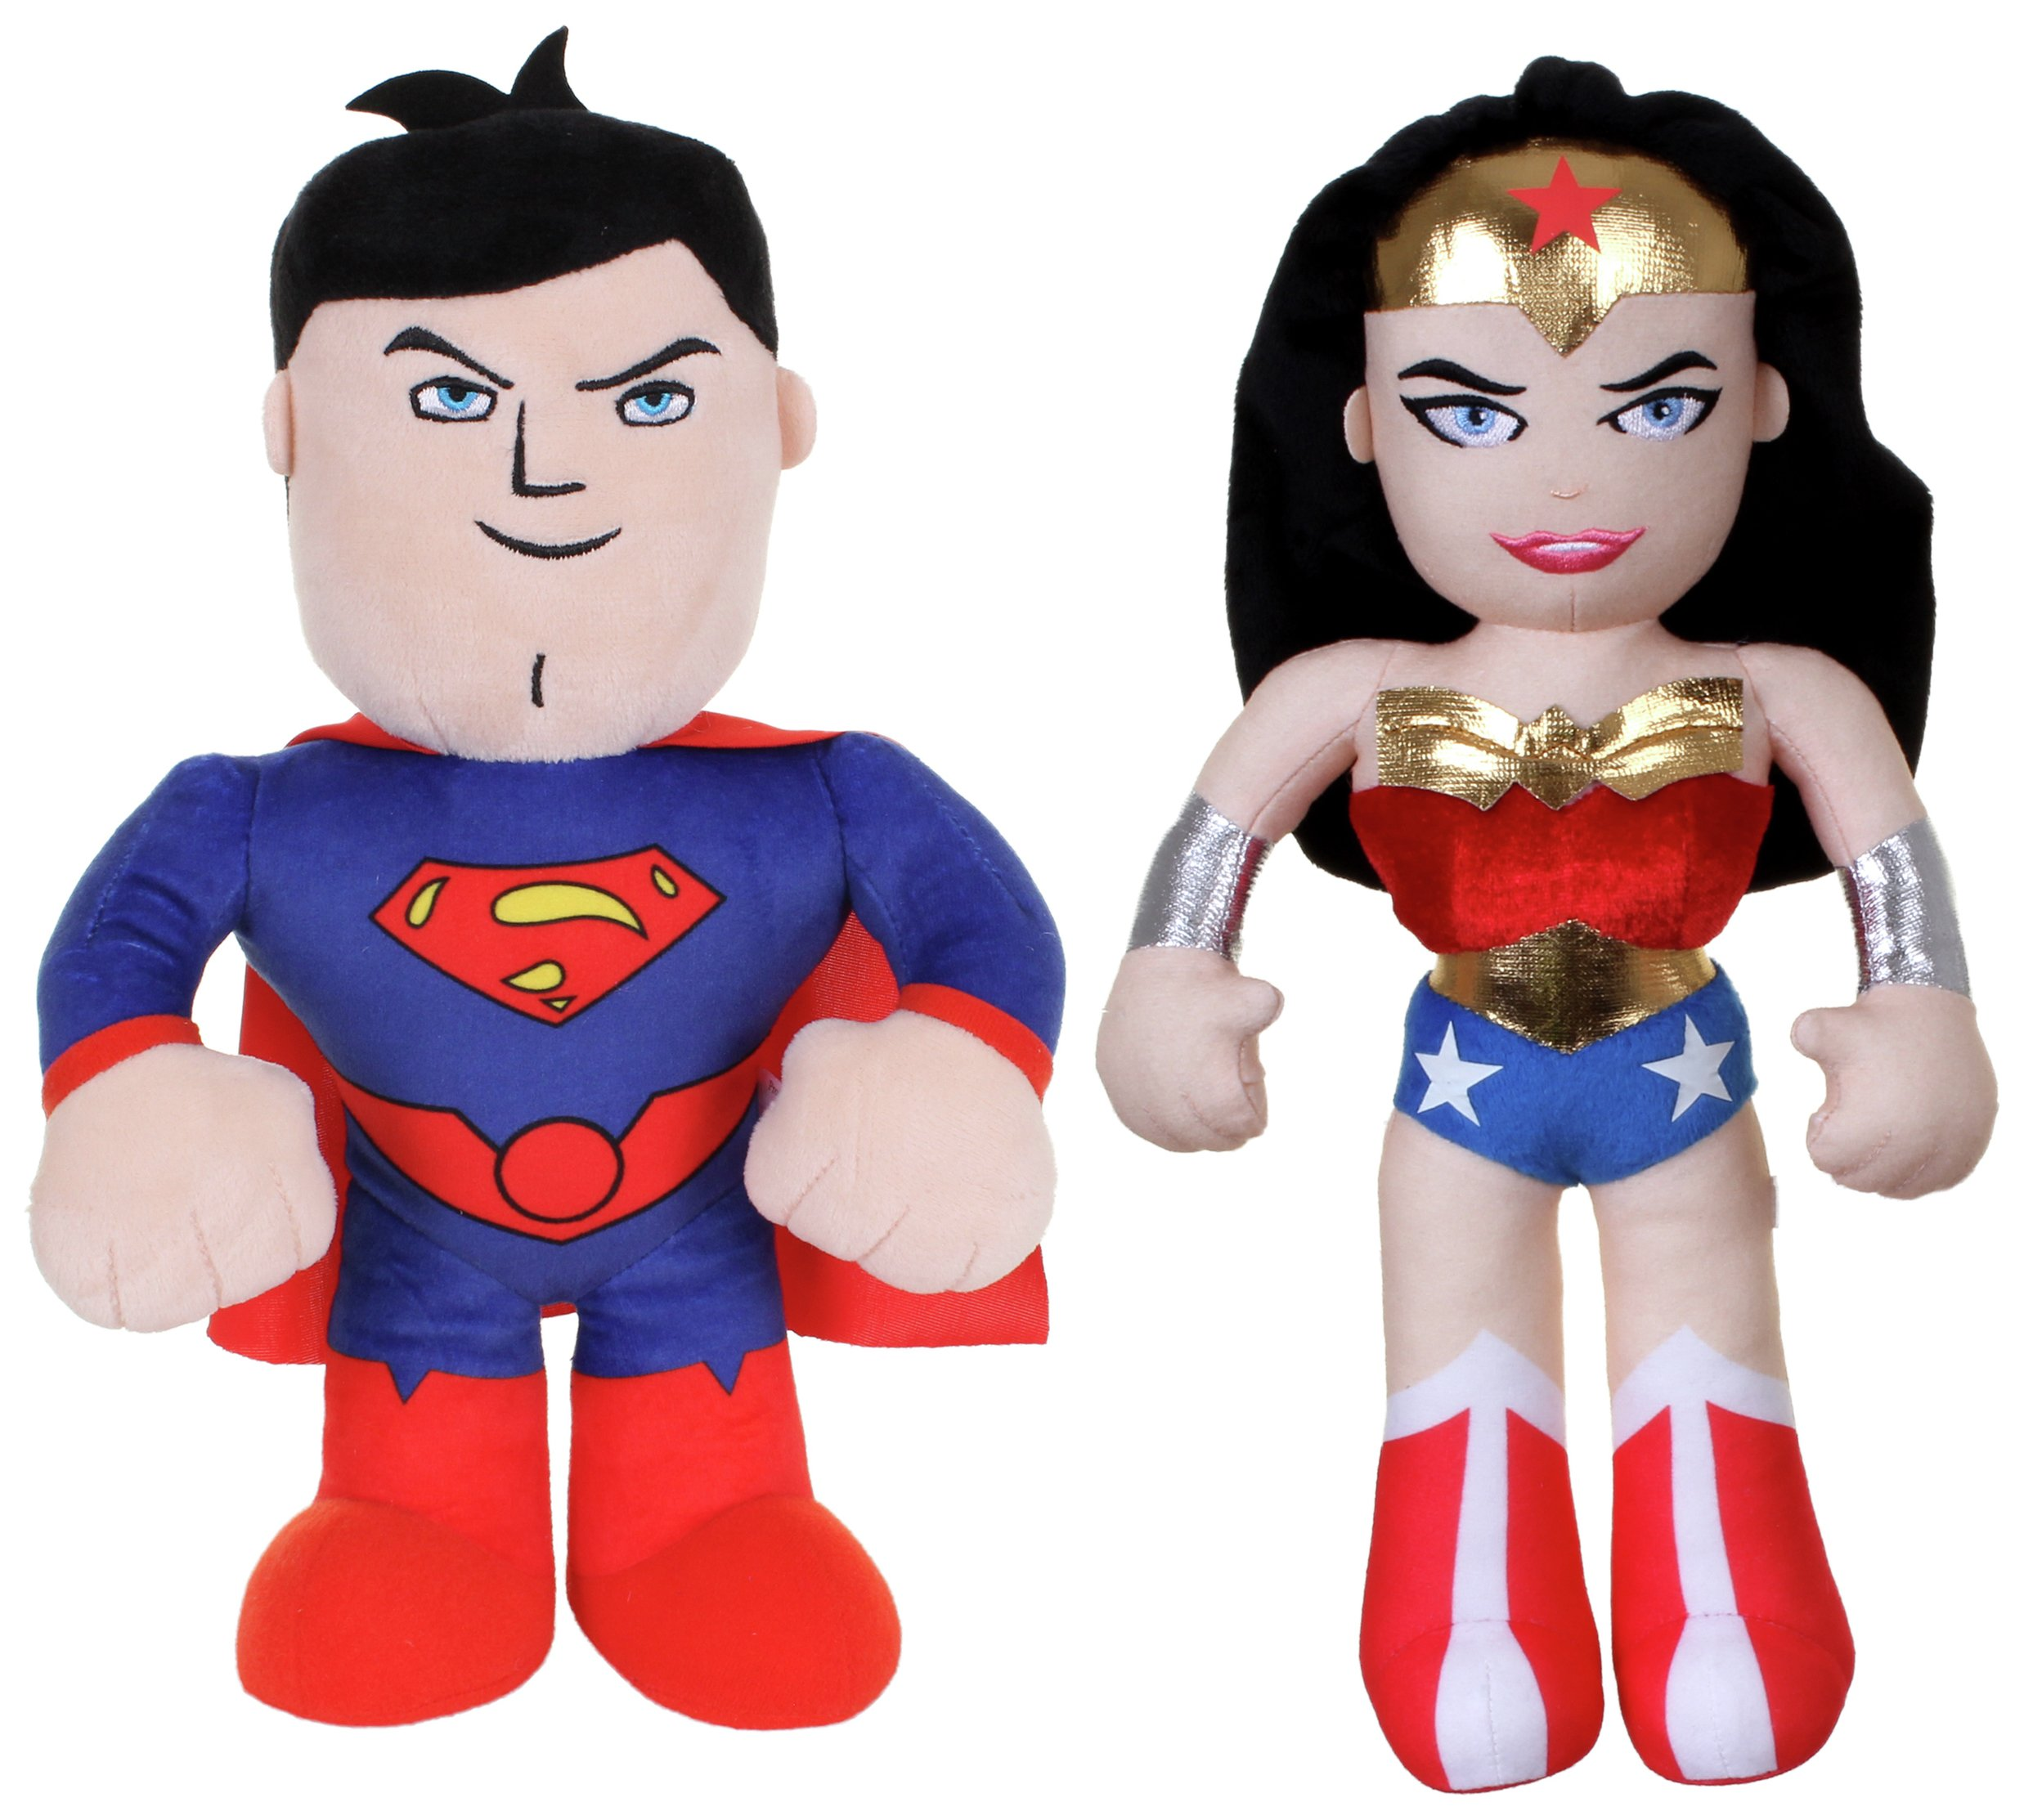 DC Super Friends Talking Superman & Wonder Woman Soft Toys.